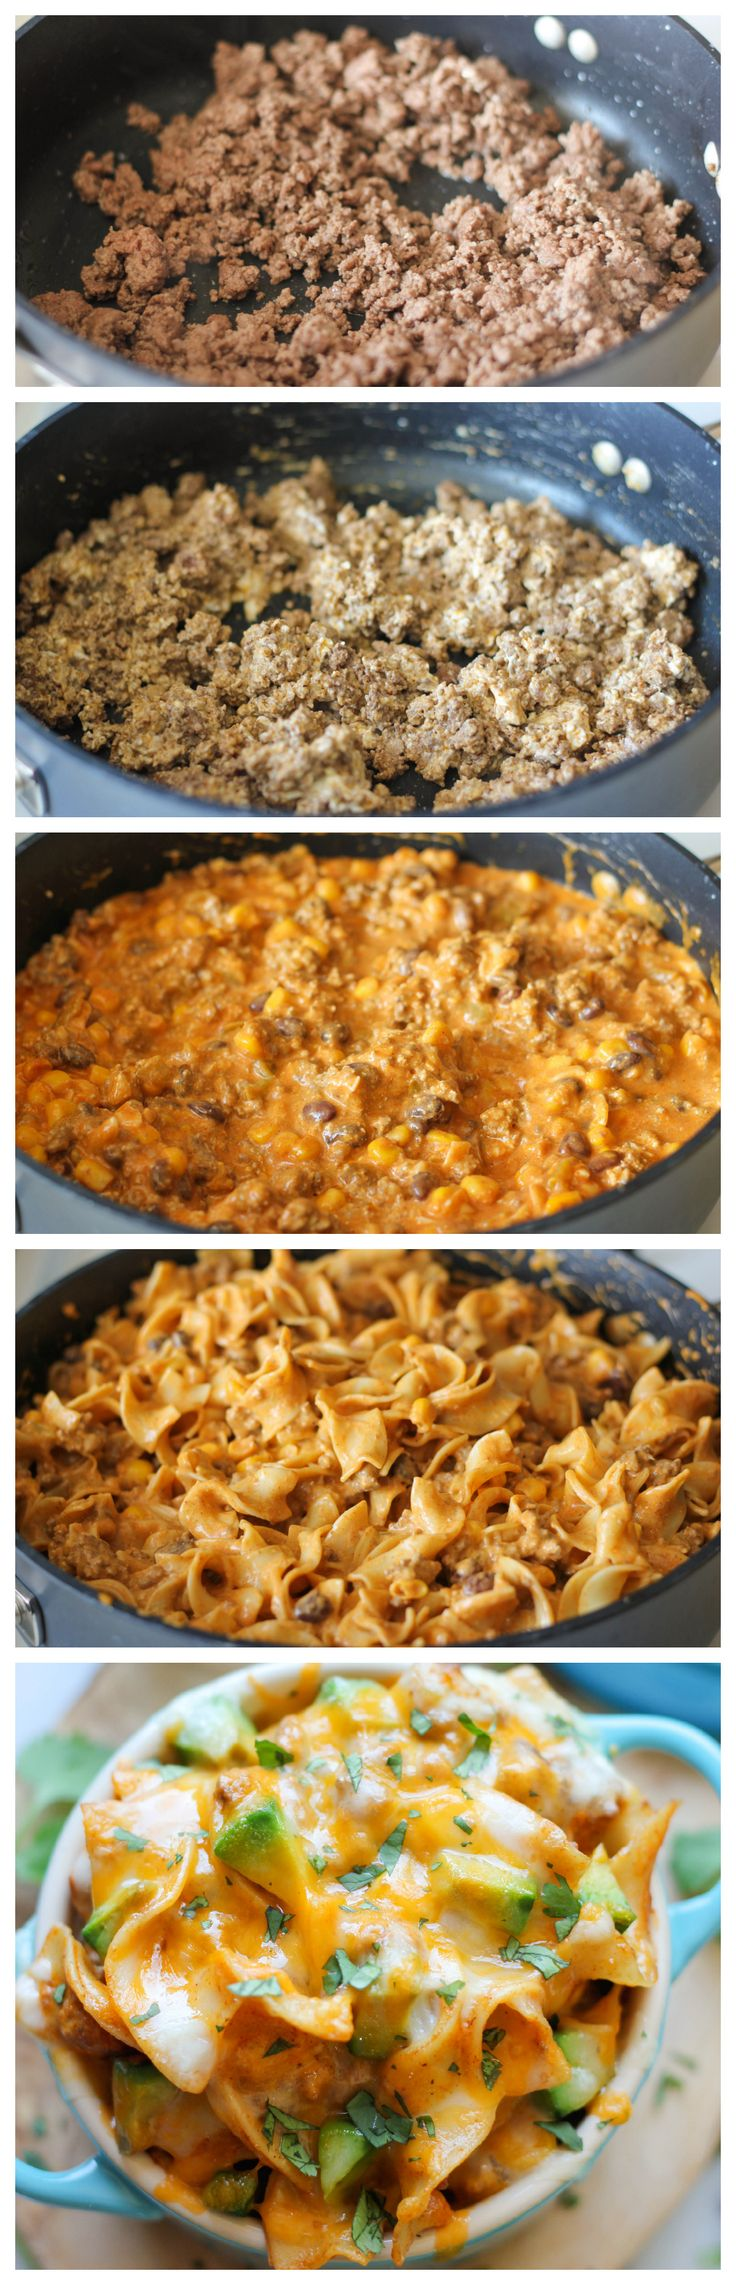 Enchilada Pasta Recipe ~ All the flavors of cheesy enchiladas are tossed together in this quick and easy pasta dish!